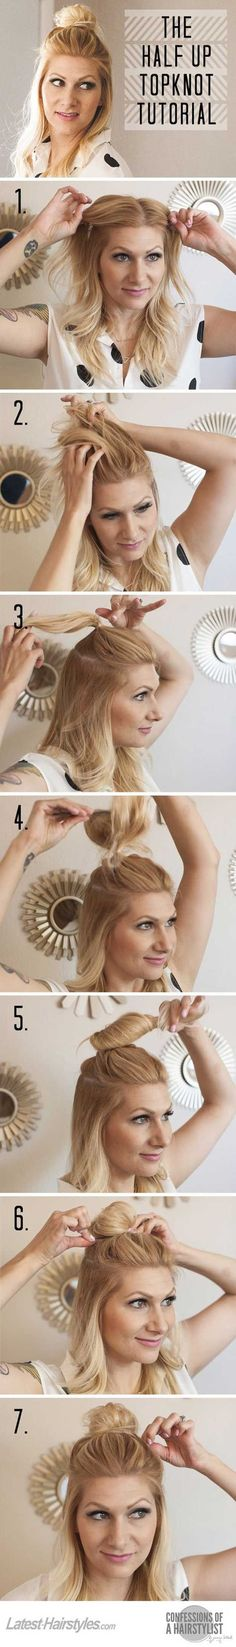 Amazing Half Up-Half Down Hairstyles For Long Hair - How To Do Hairstyle Trend Half Up Top Knot - Easy Step By Step Tutorials And Tips For Hair Styles And Hair Ideas For Prom, For The Bridesmaid, For Homecoming, Wedding, And Bride. Try An Updo Or A Half Up Half Down Hairstyle For Long Hair Or A Casual Half Ponytail For Blonde Or Brunette Hair. Easy Tutorial For Straight Hair Including A Top Knot, Loose Curls, And The Simple Half Bun. Styles And Hairdos For Veils, For Summer, For Fall, And…